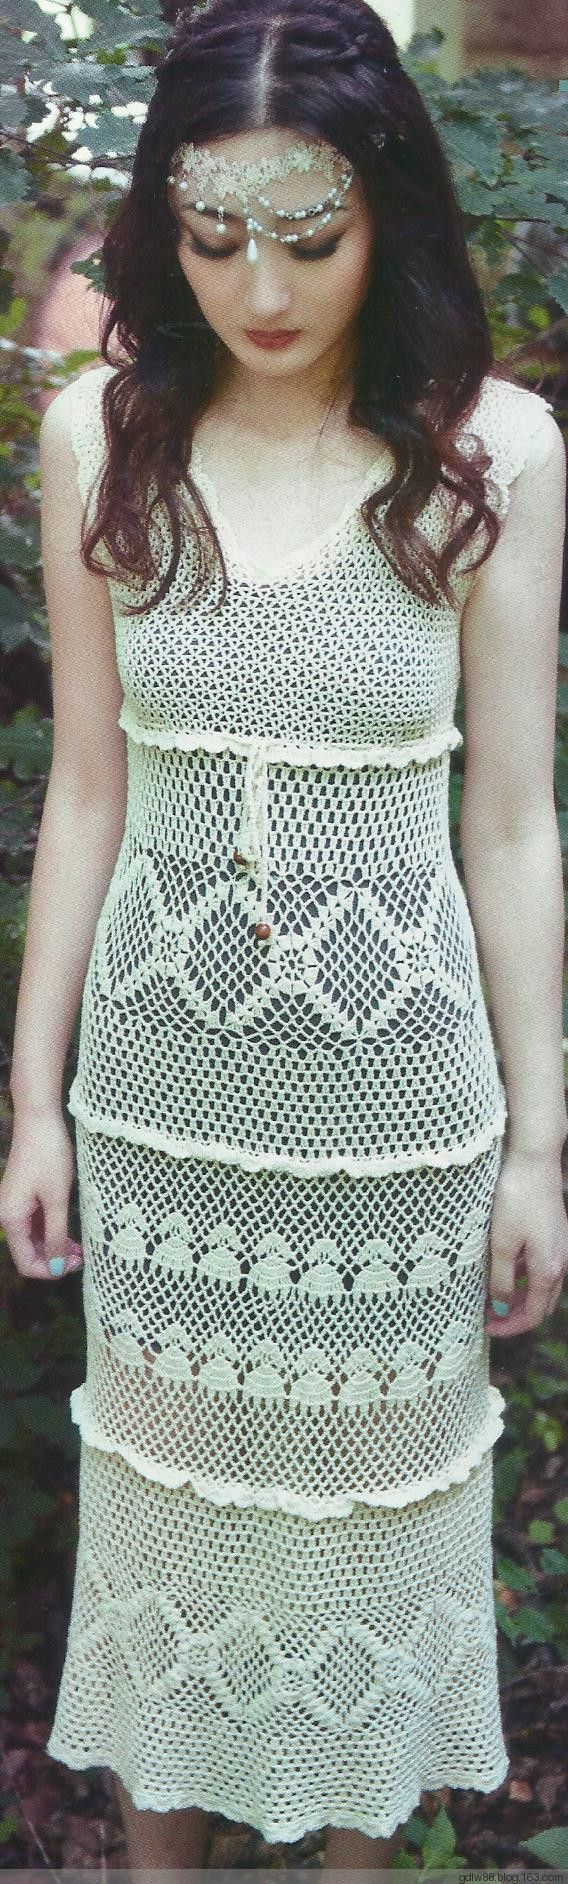 636 best Vestidos em croche images on Pinterest | Crochet dresses ...